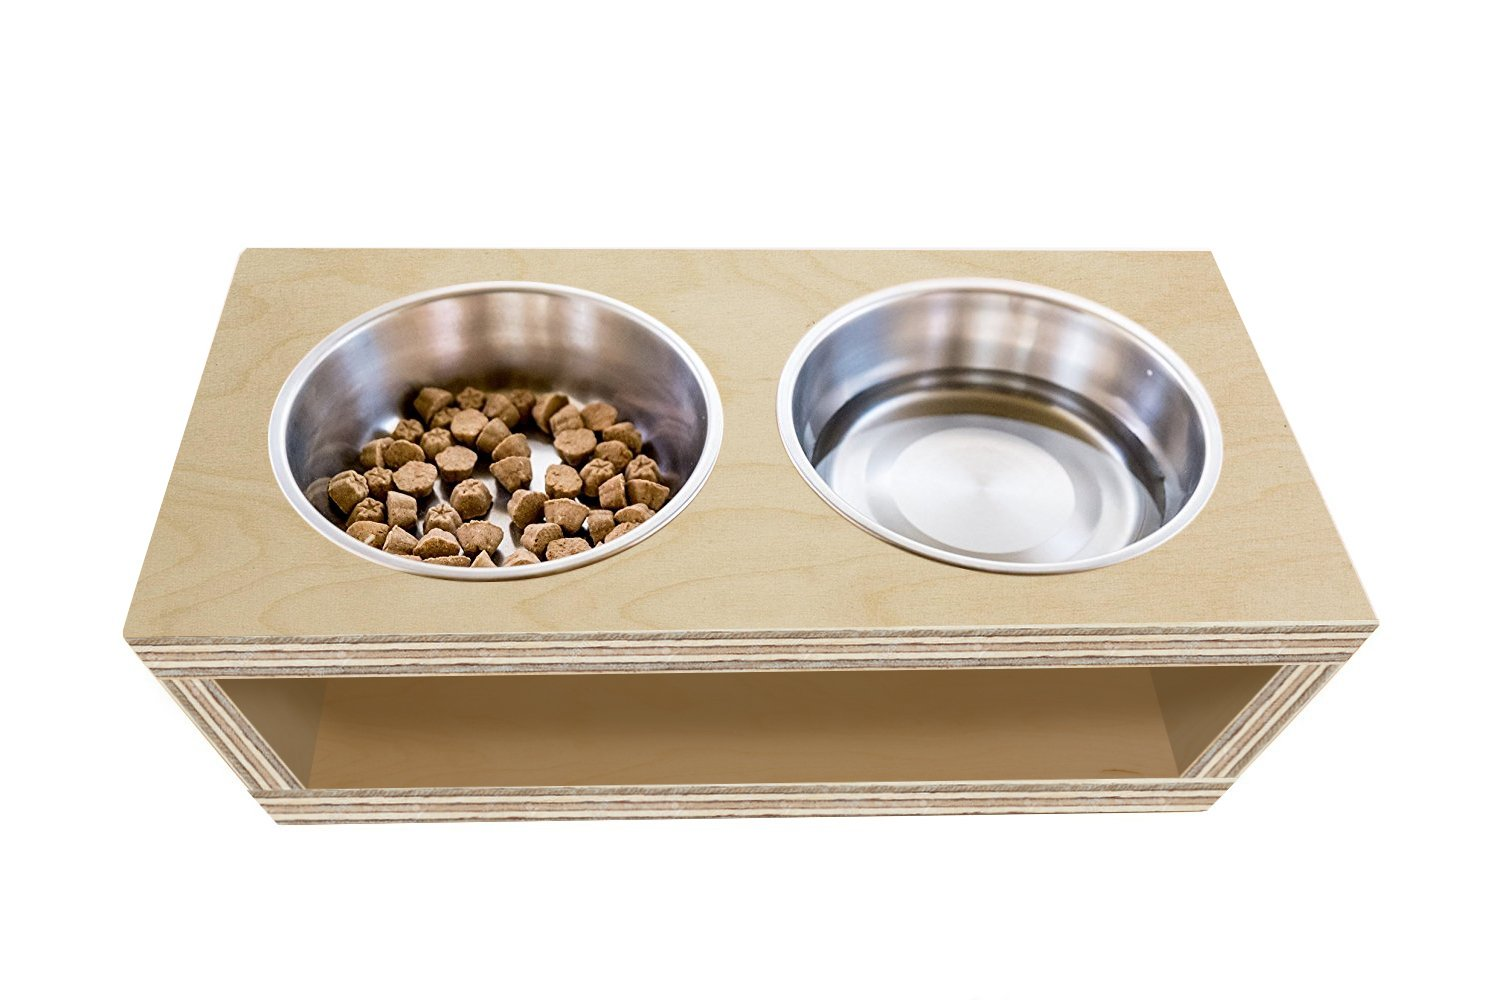 TFKitchen Unfinish Plywood Elevated Dog and Cat Pet Feeder, Double Bowl Raised Stand (3 Quart), 3/4'' Thick, 25'' x 12'' x 10'' Tall